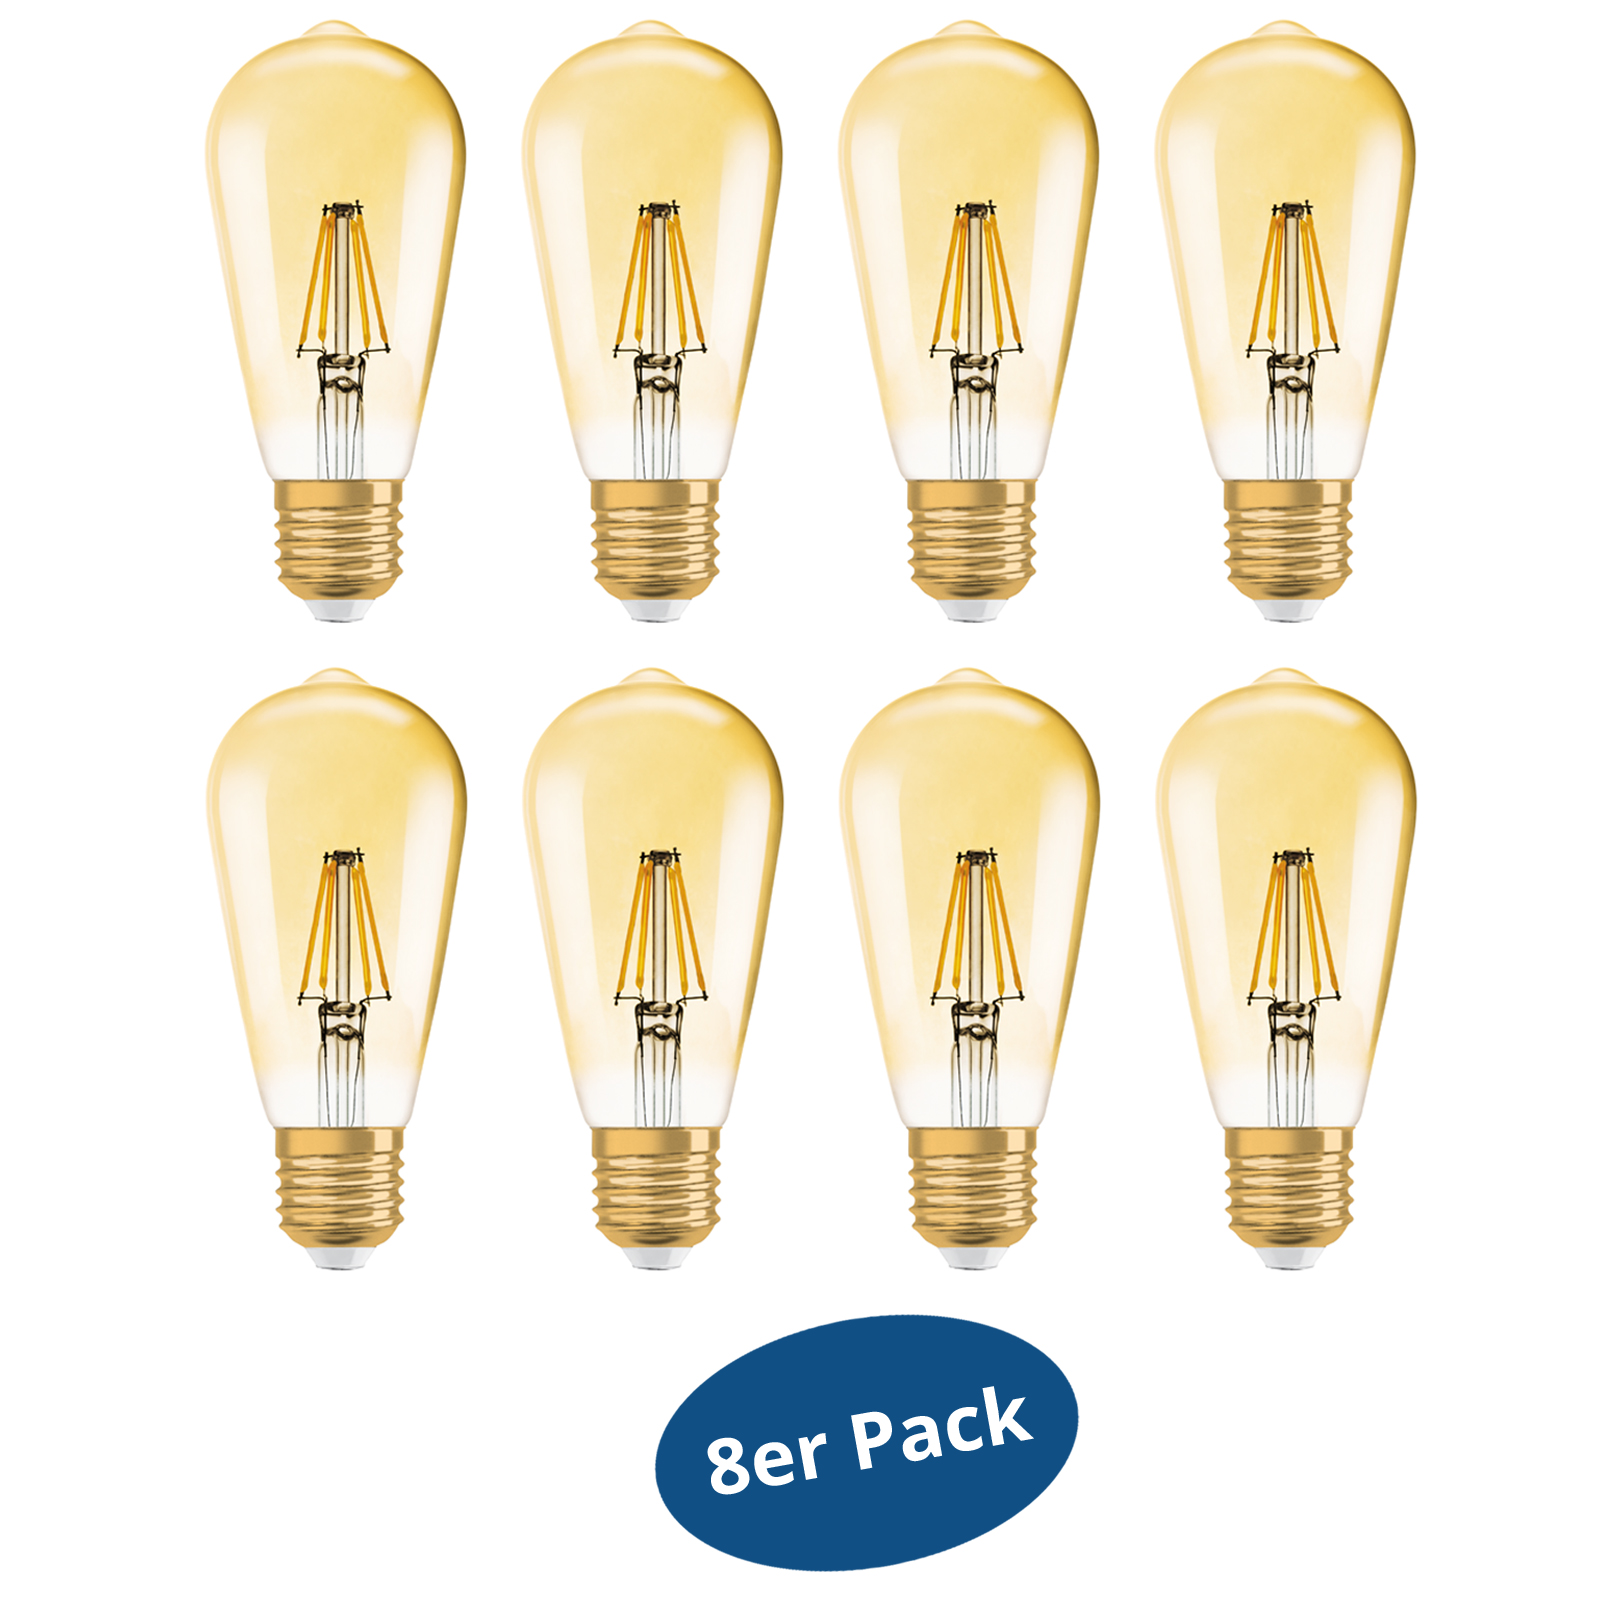 8er pack osram led lampe edition 1906 e27 6 5w edison 51w warm white dimmable. Black Bedroom Furniture Sets. Home Design Ideas